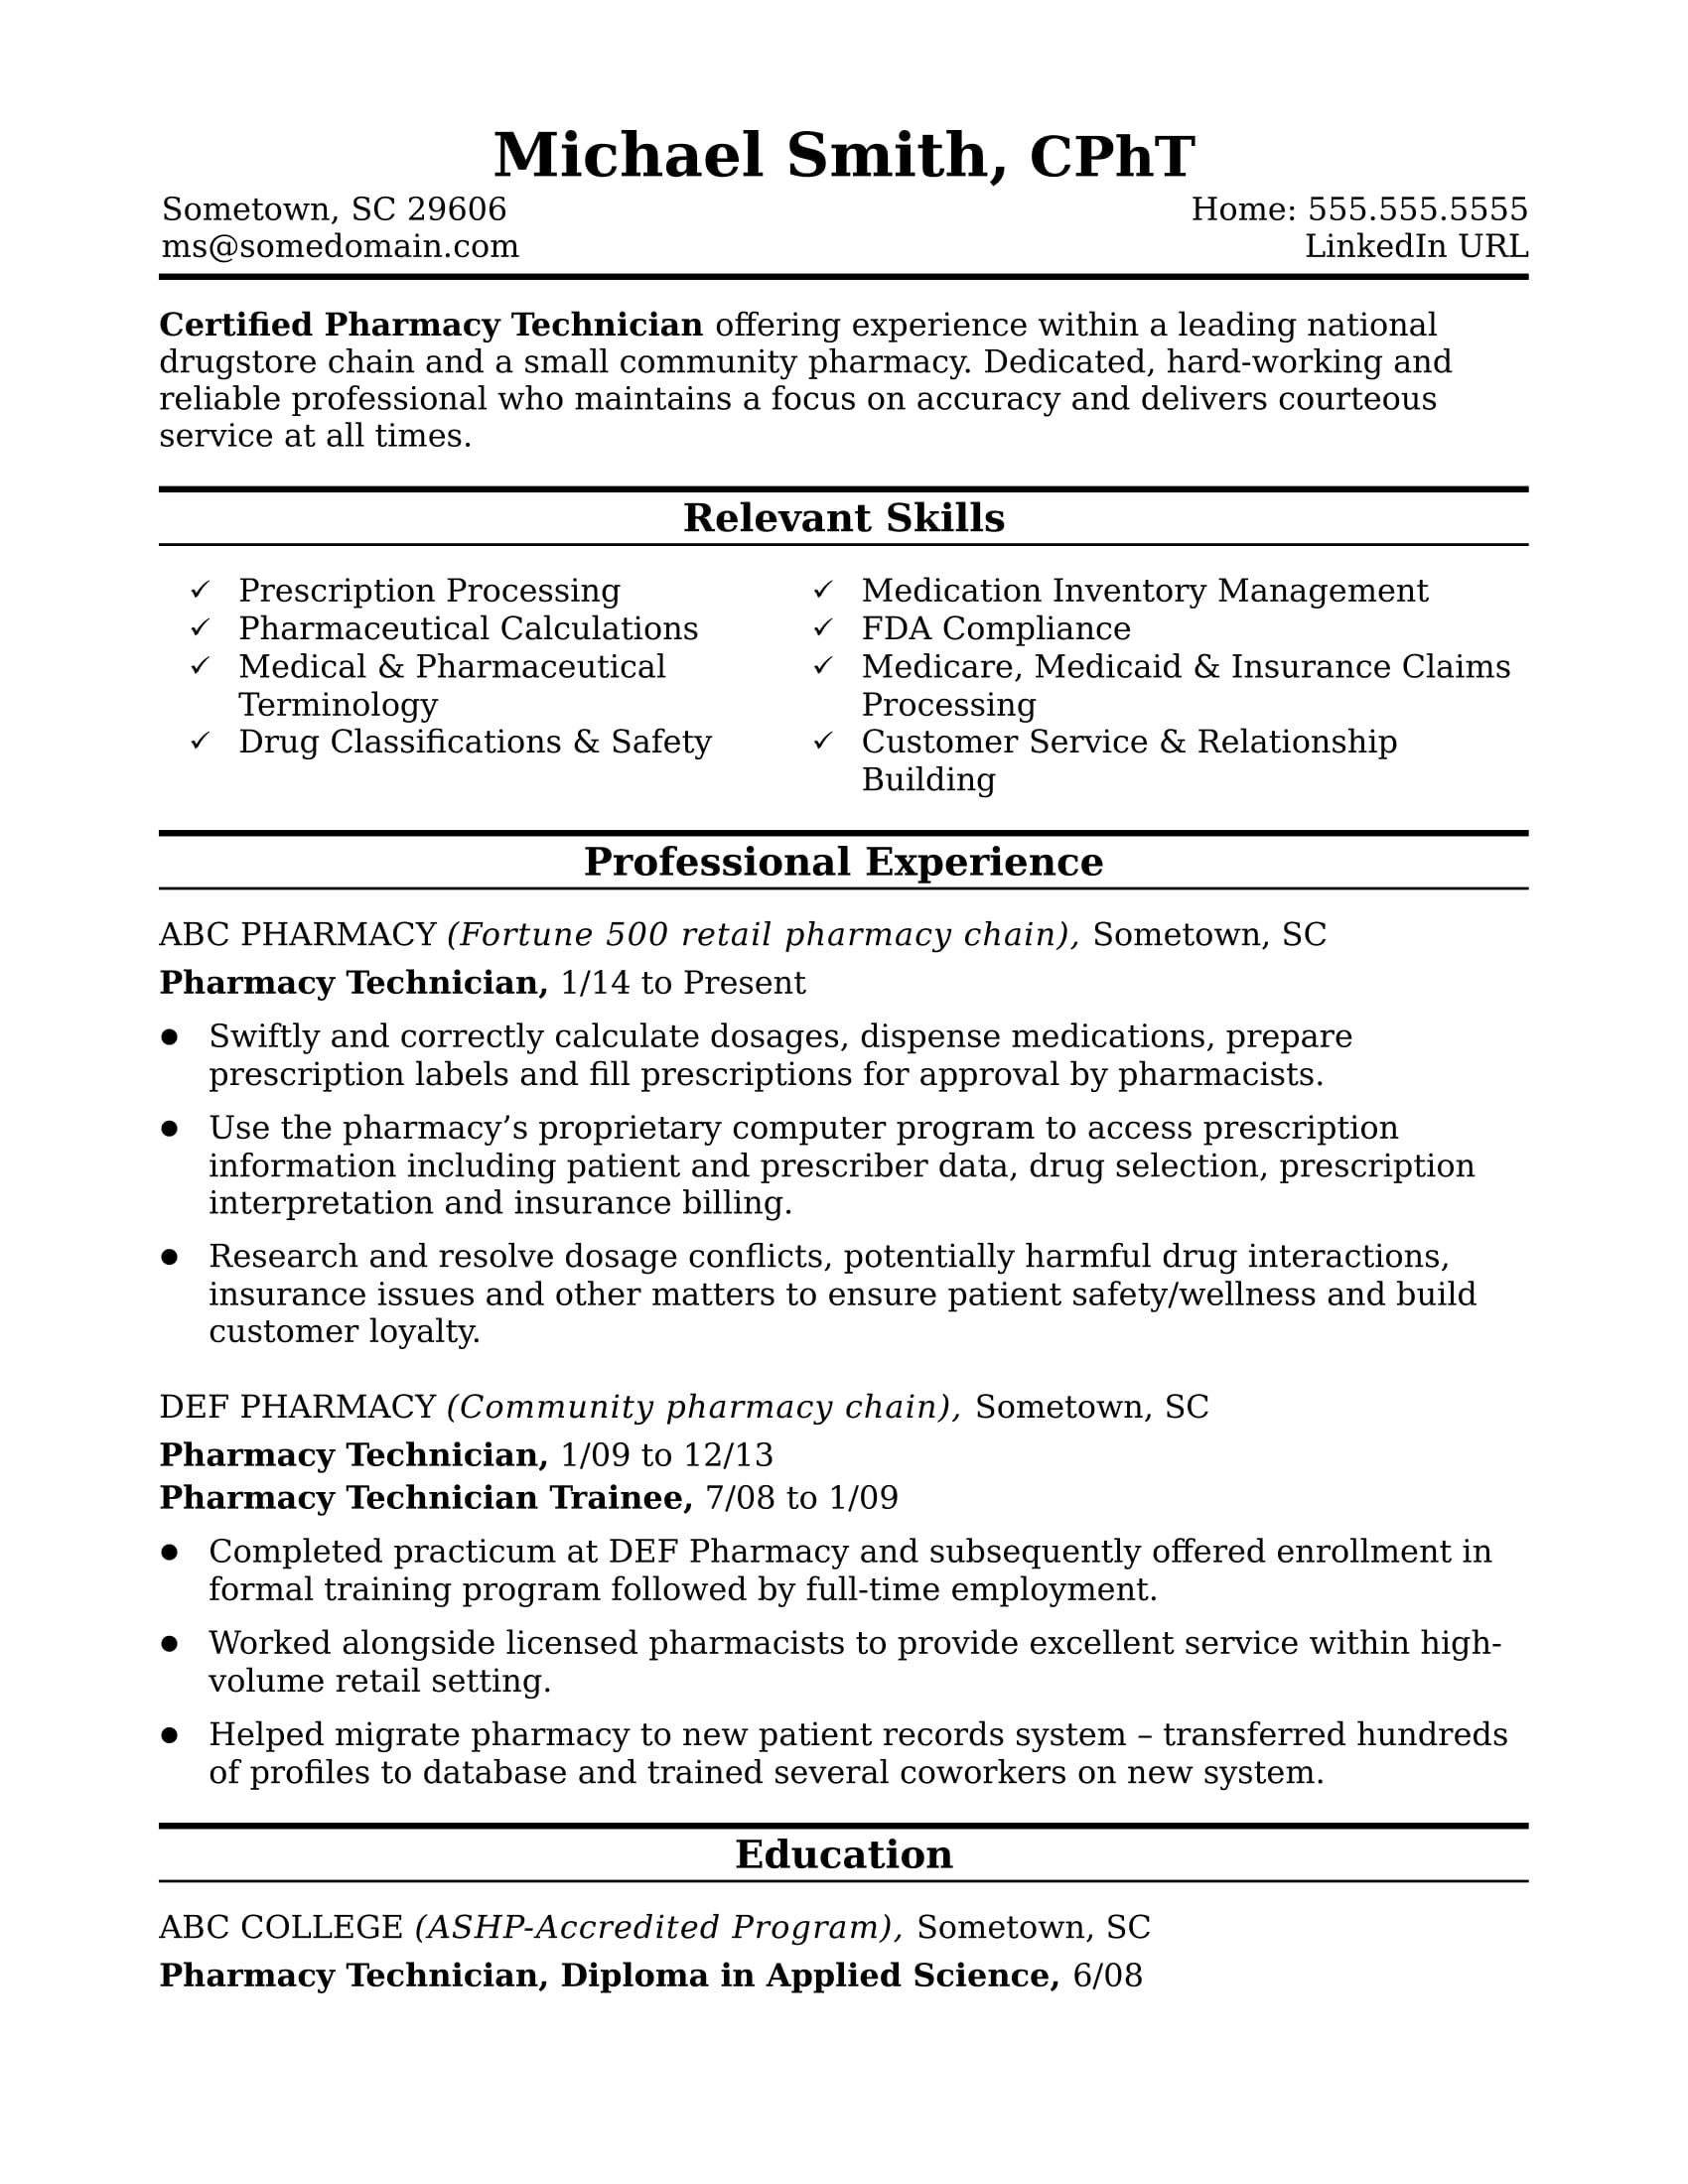 pharmacy tech resume midlevel pharmacy technician resume sample 23961 | pharmacy technician midlevel